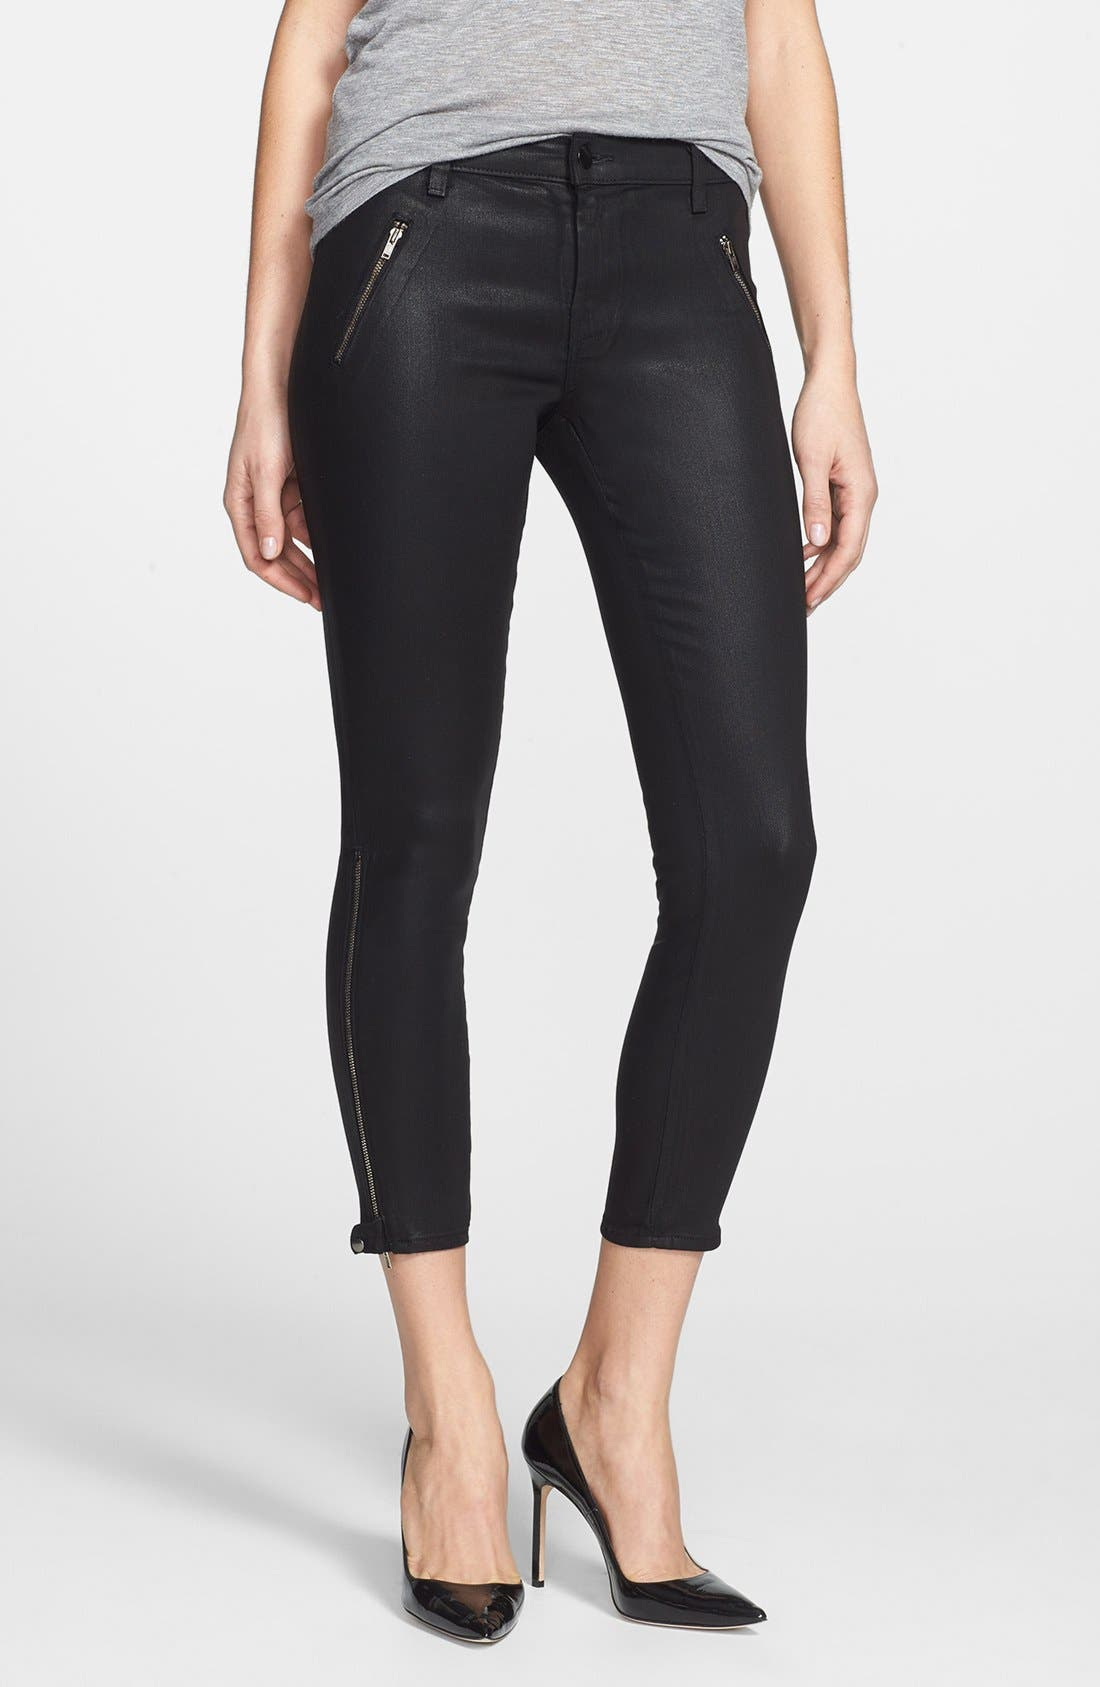 Alternate Image 1 Selected - J Brand '1446 Carey' Moto Skinny Crop Pants (Lacquered Black)